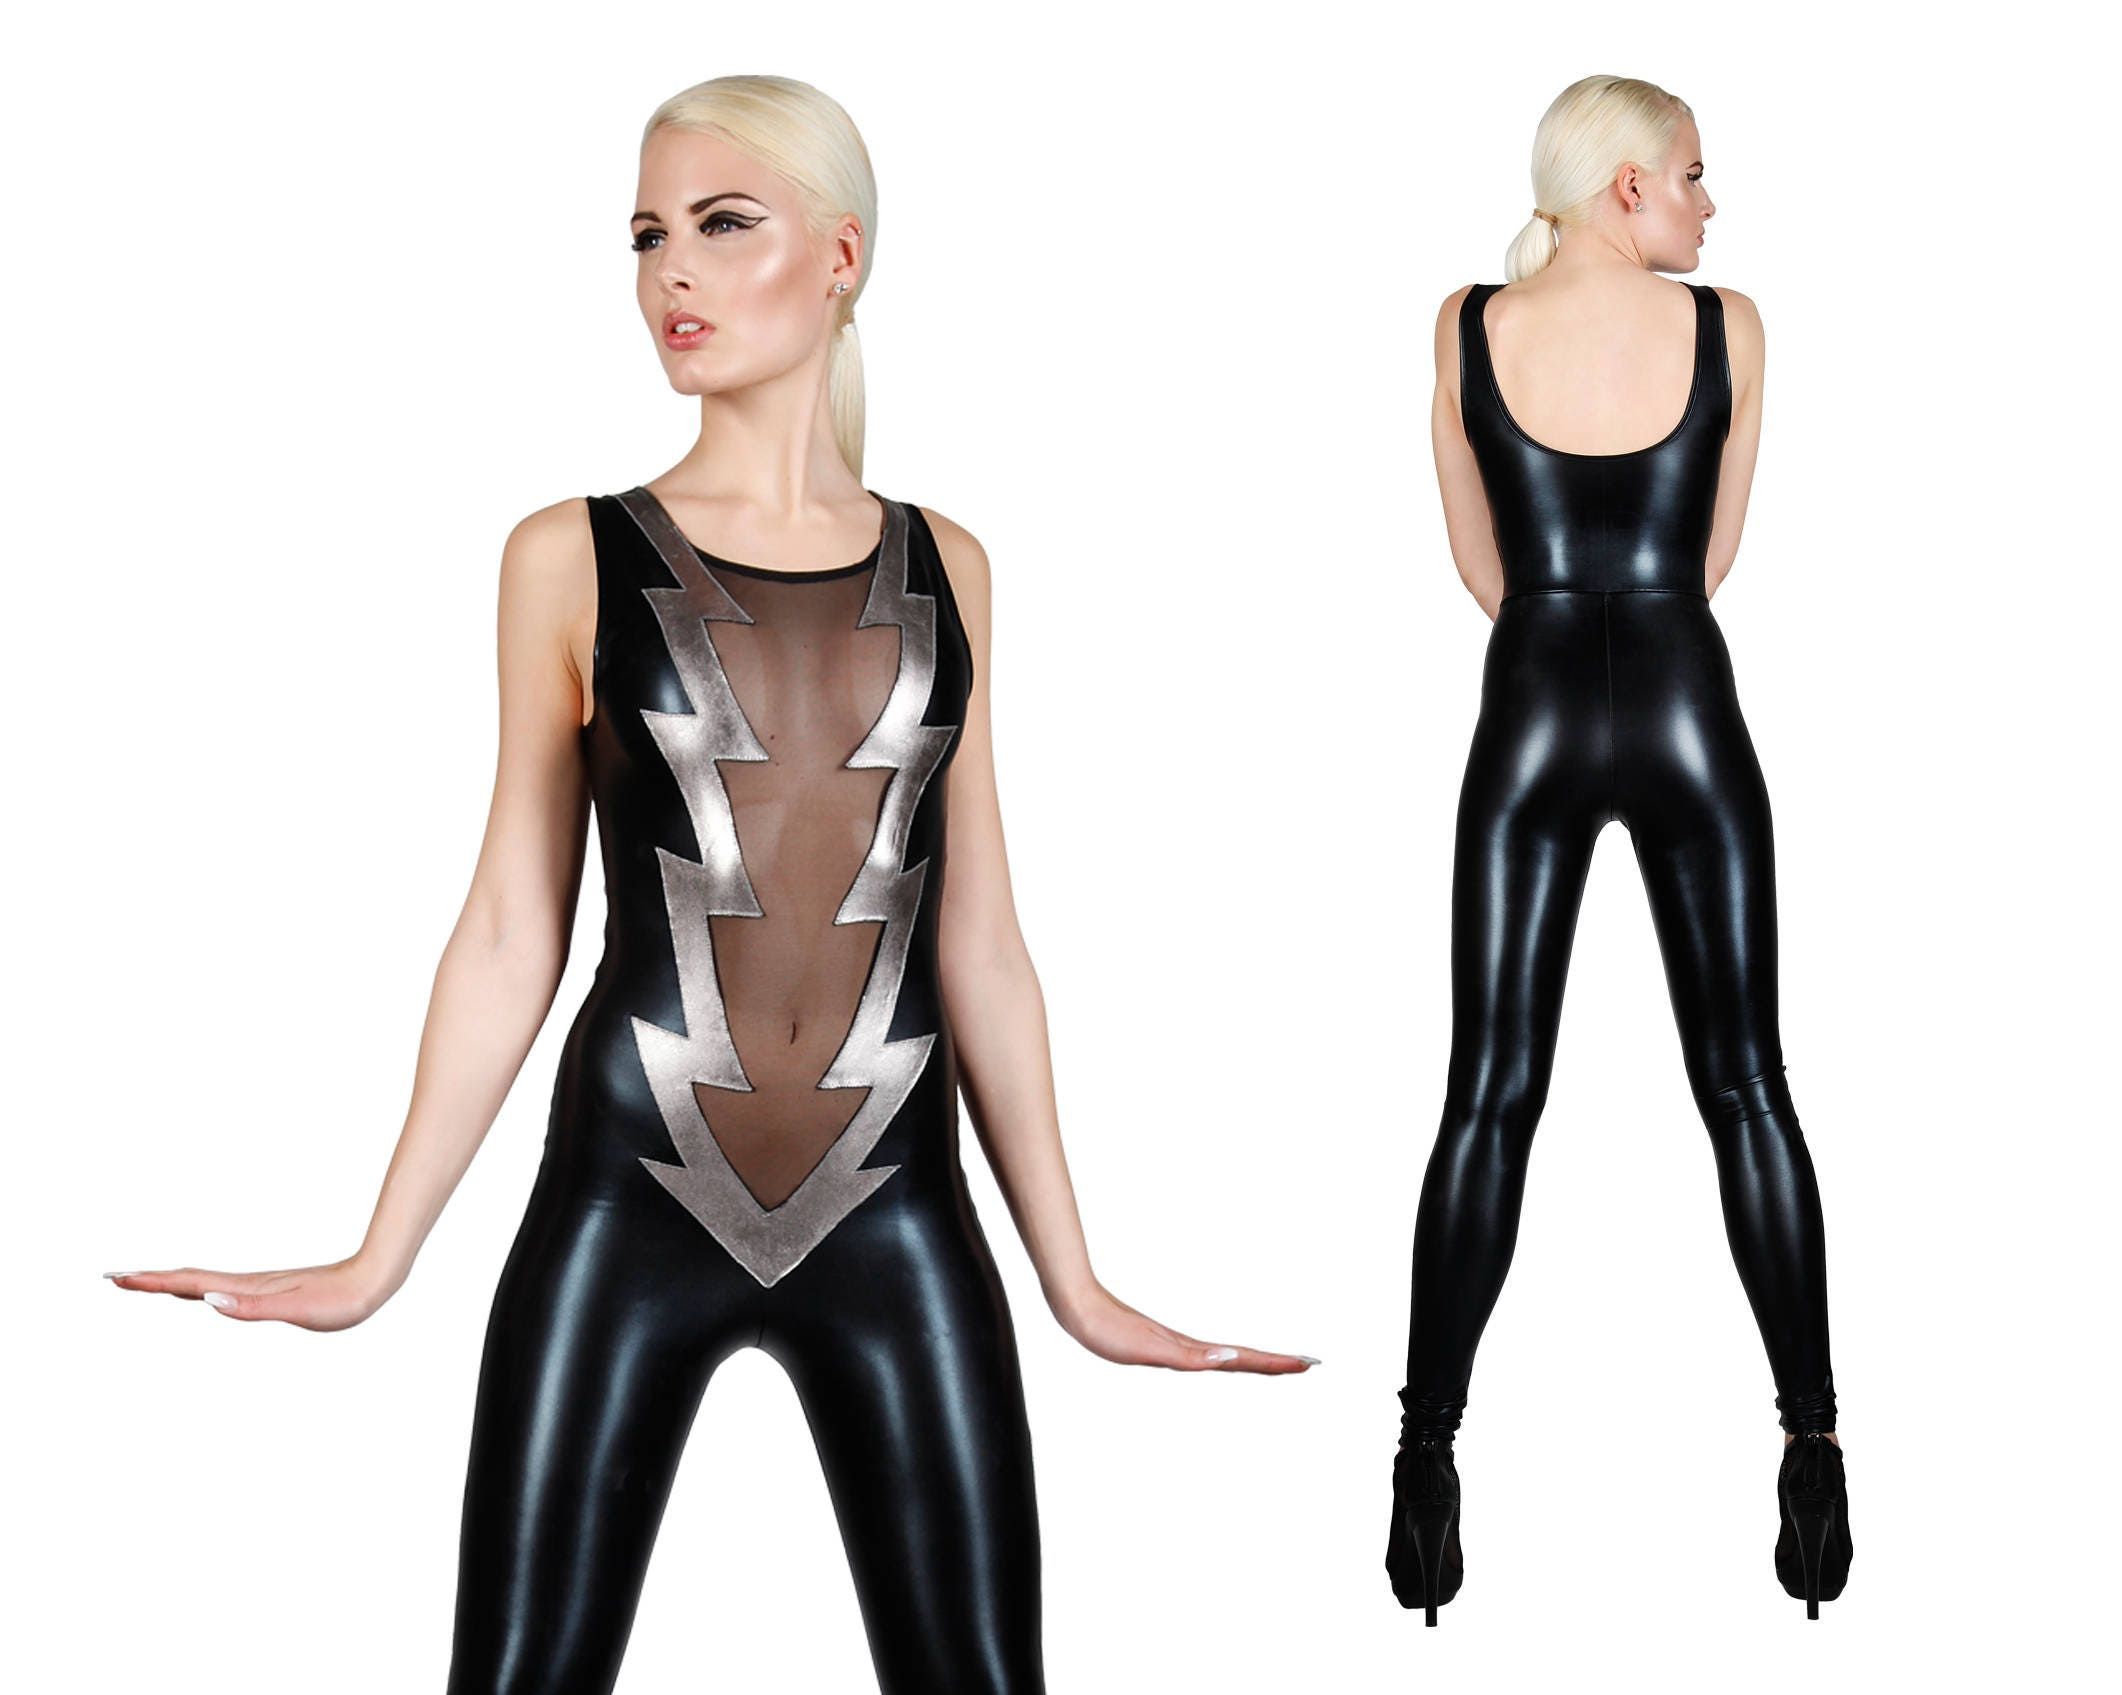 Blitz-Bolzen-Catsuit Sexy Overall David Bowie   Etsy